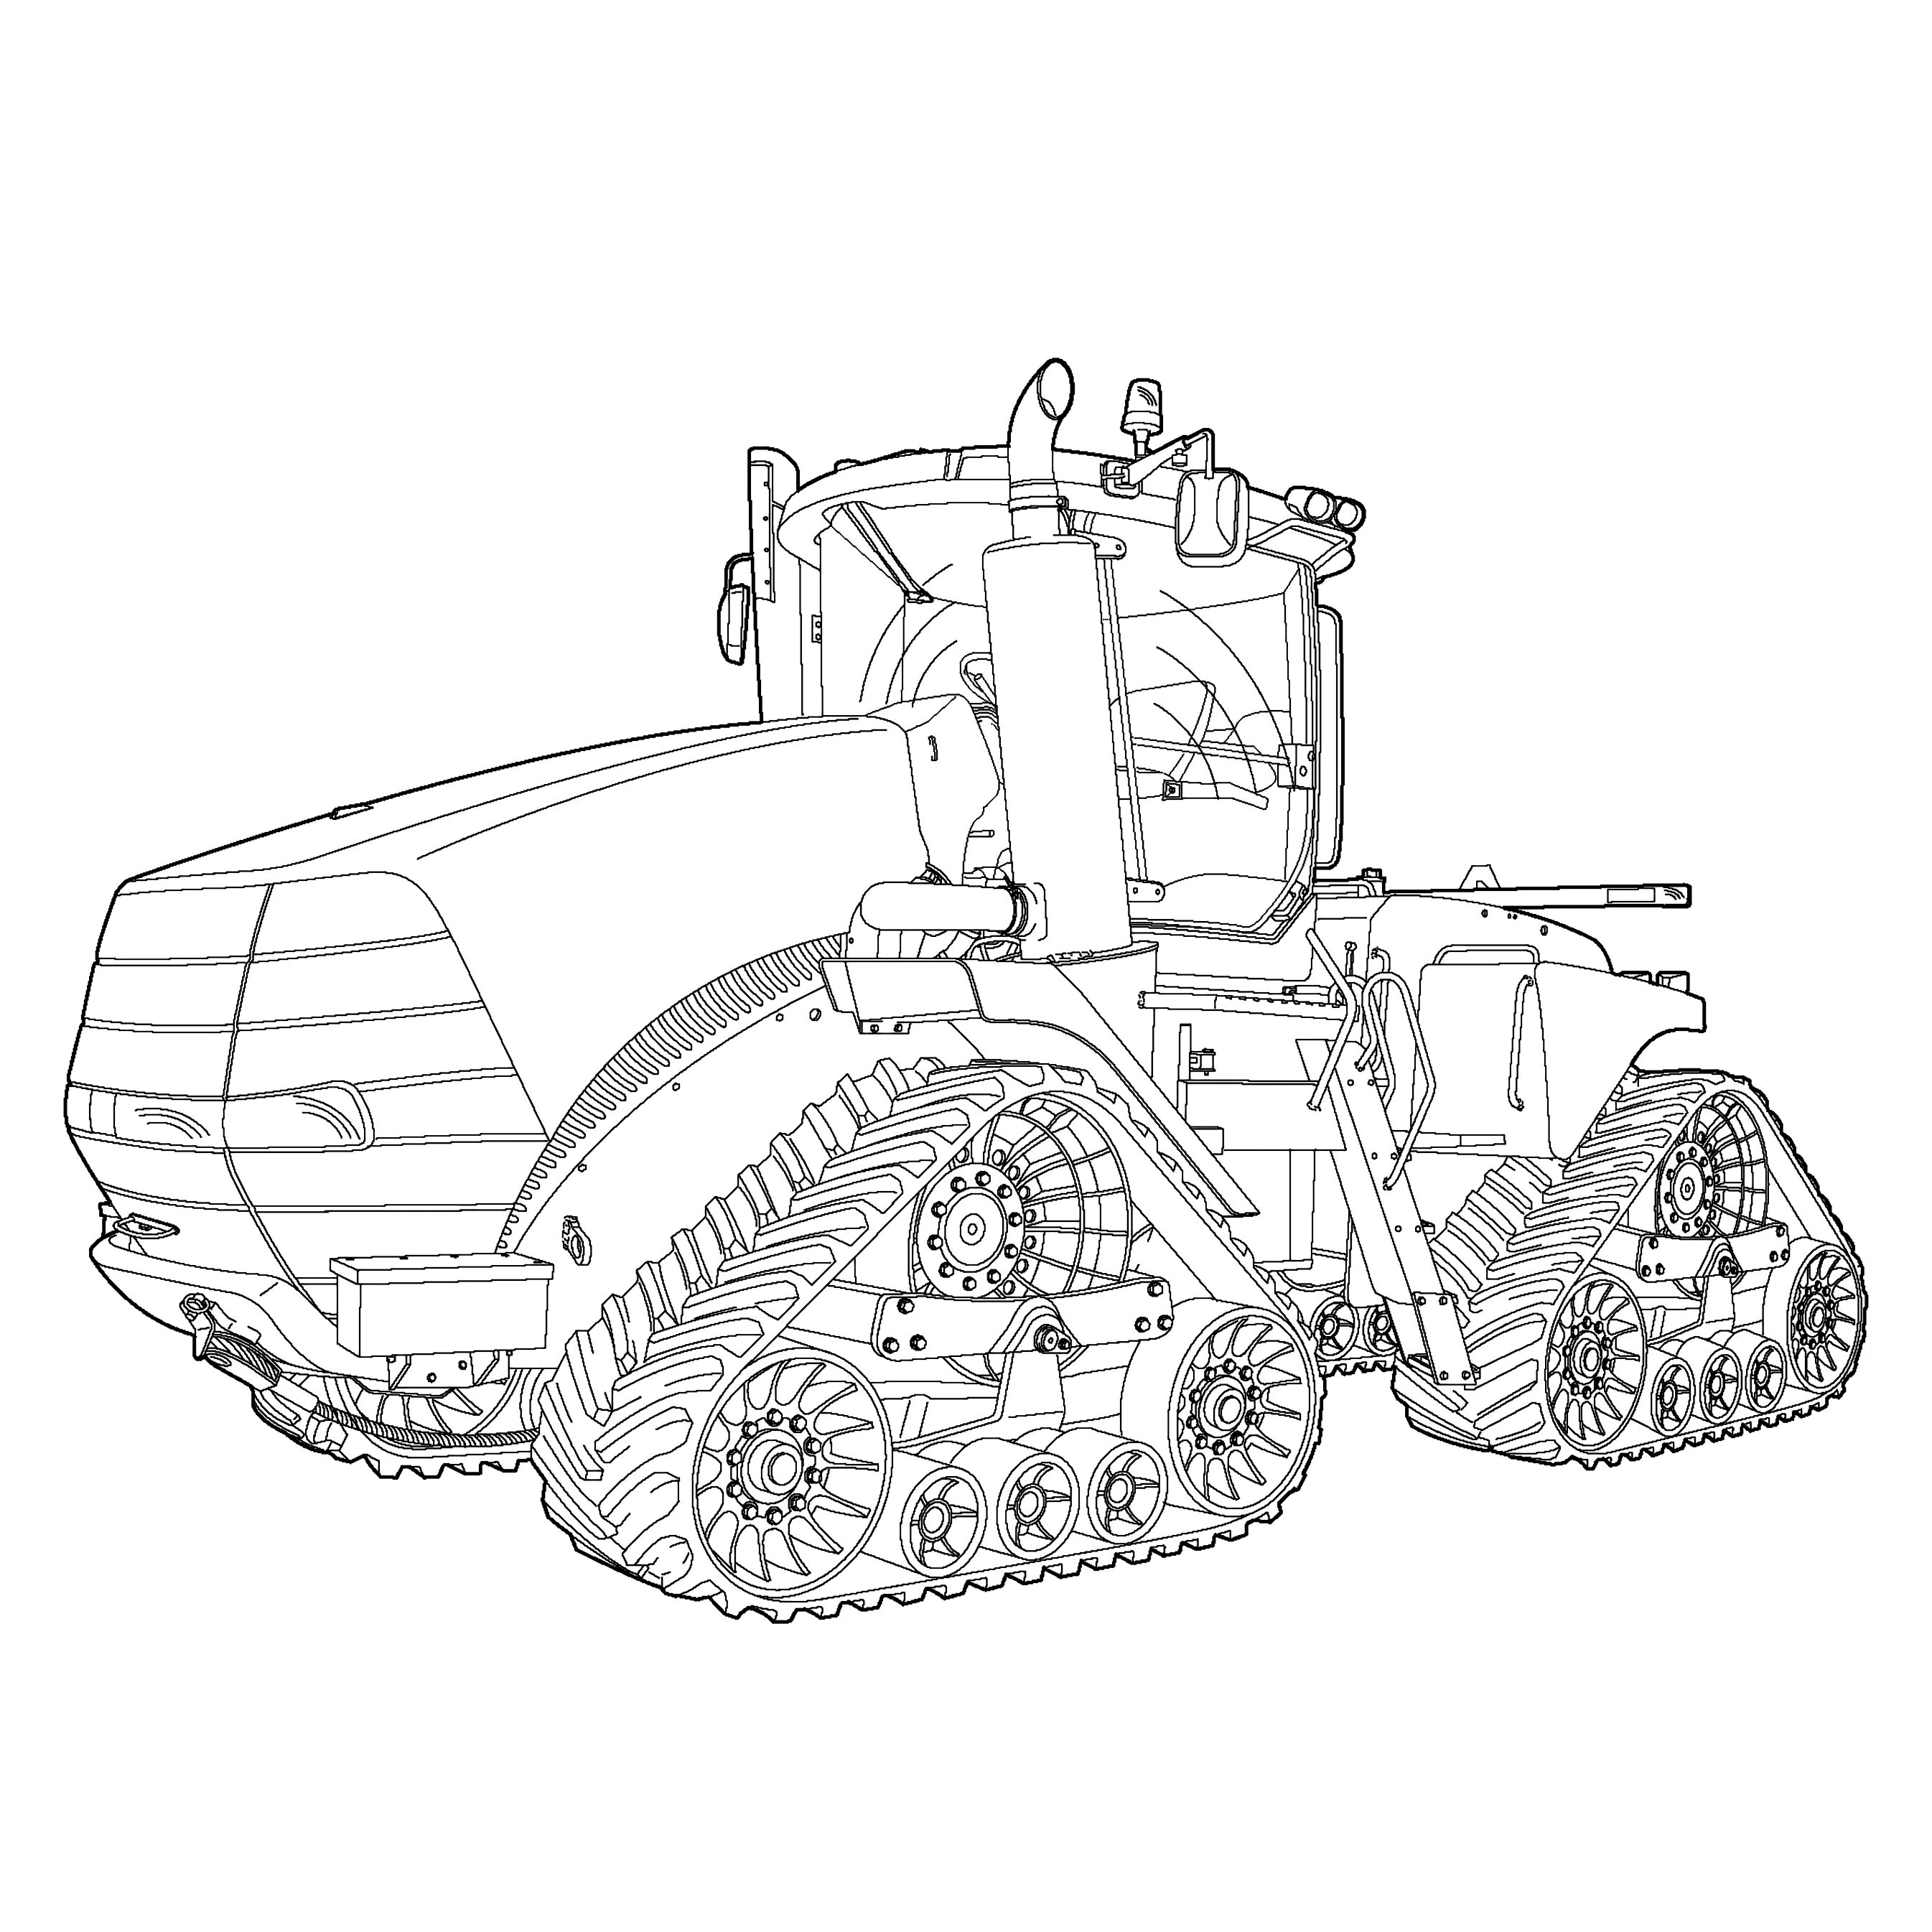 tractor coloring page tractor coloring pages to download and print for free page coloring tractor